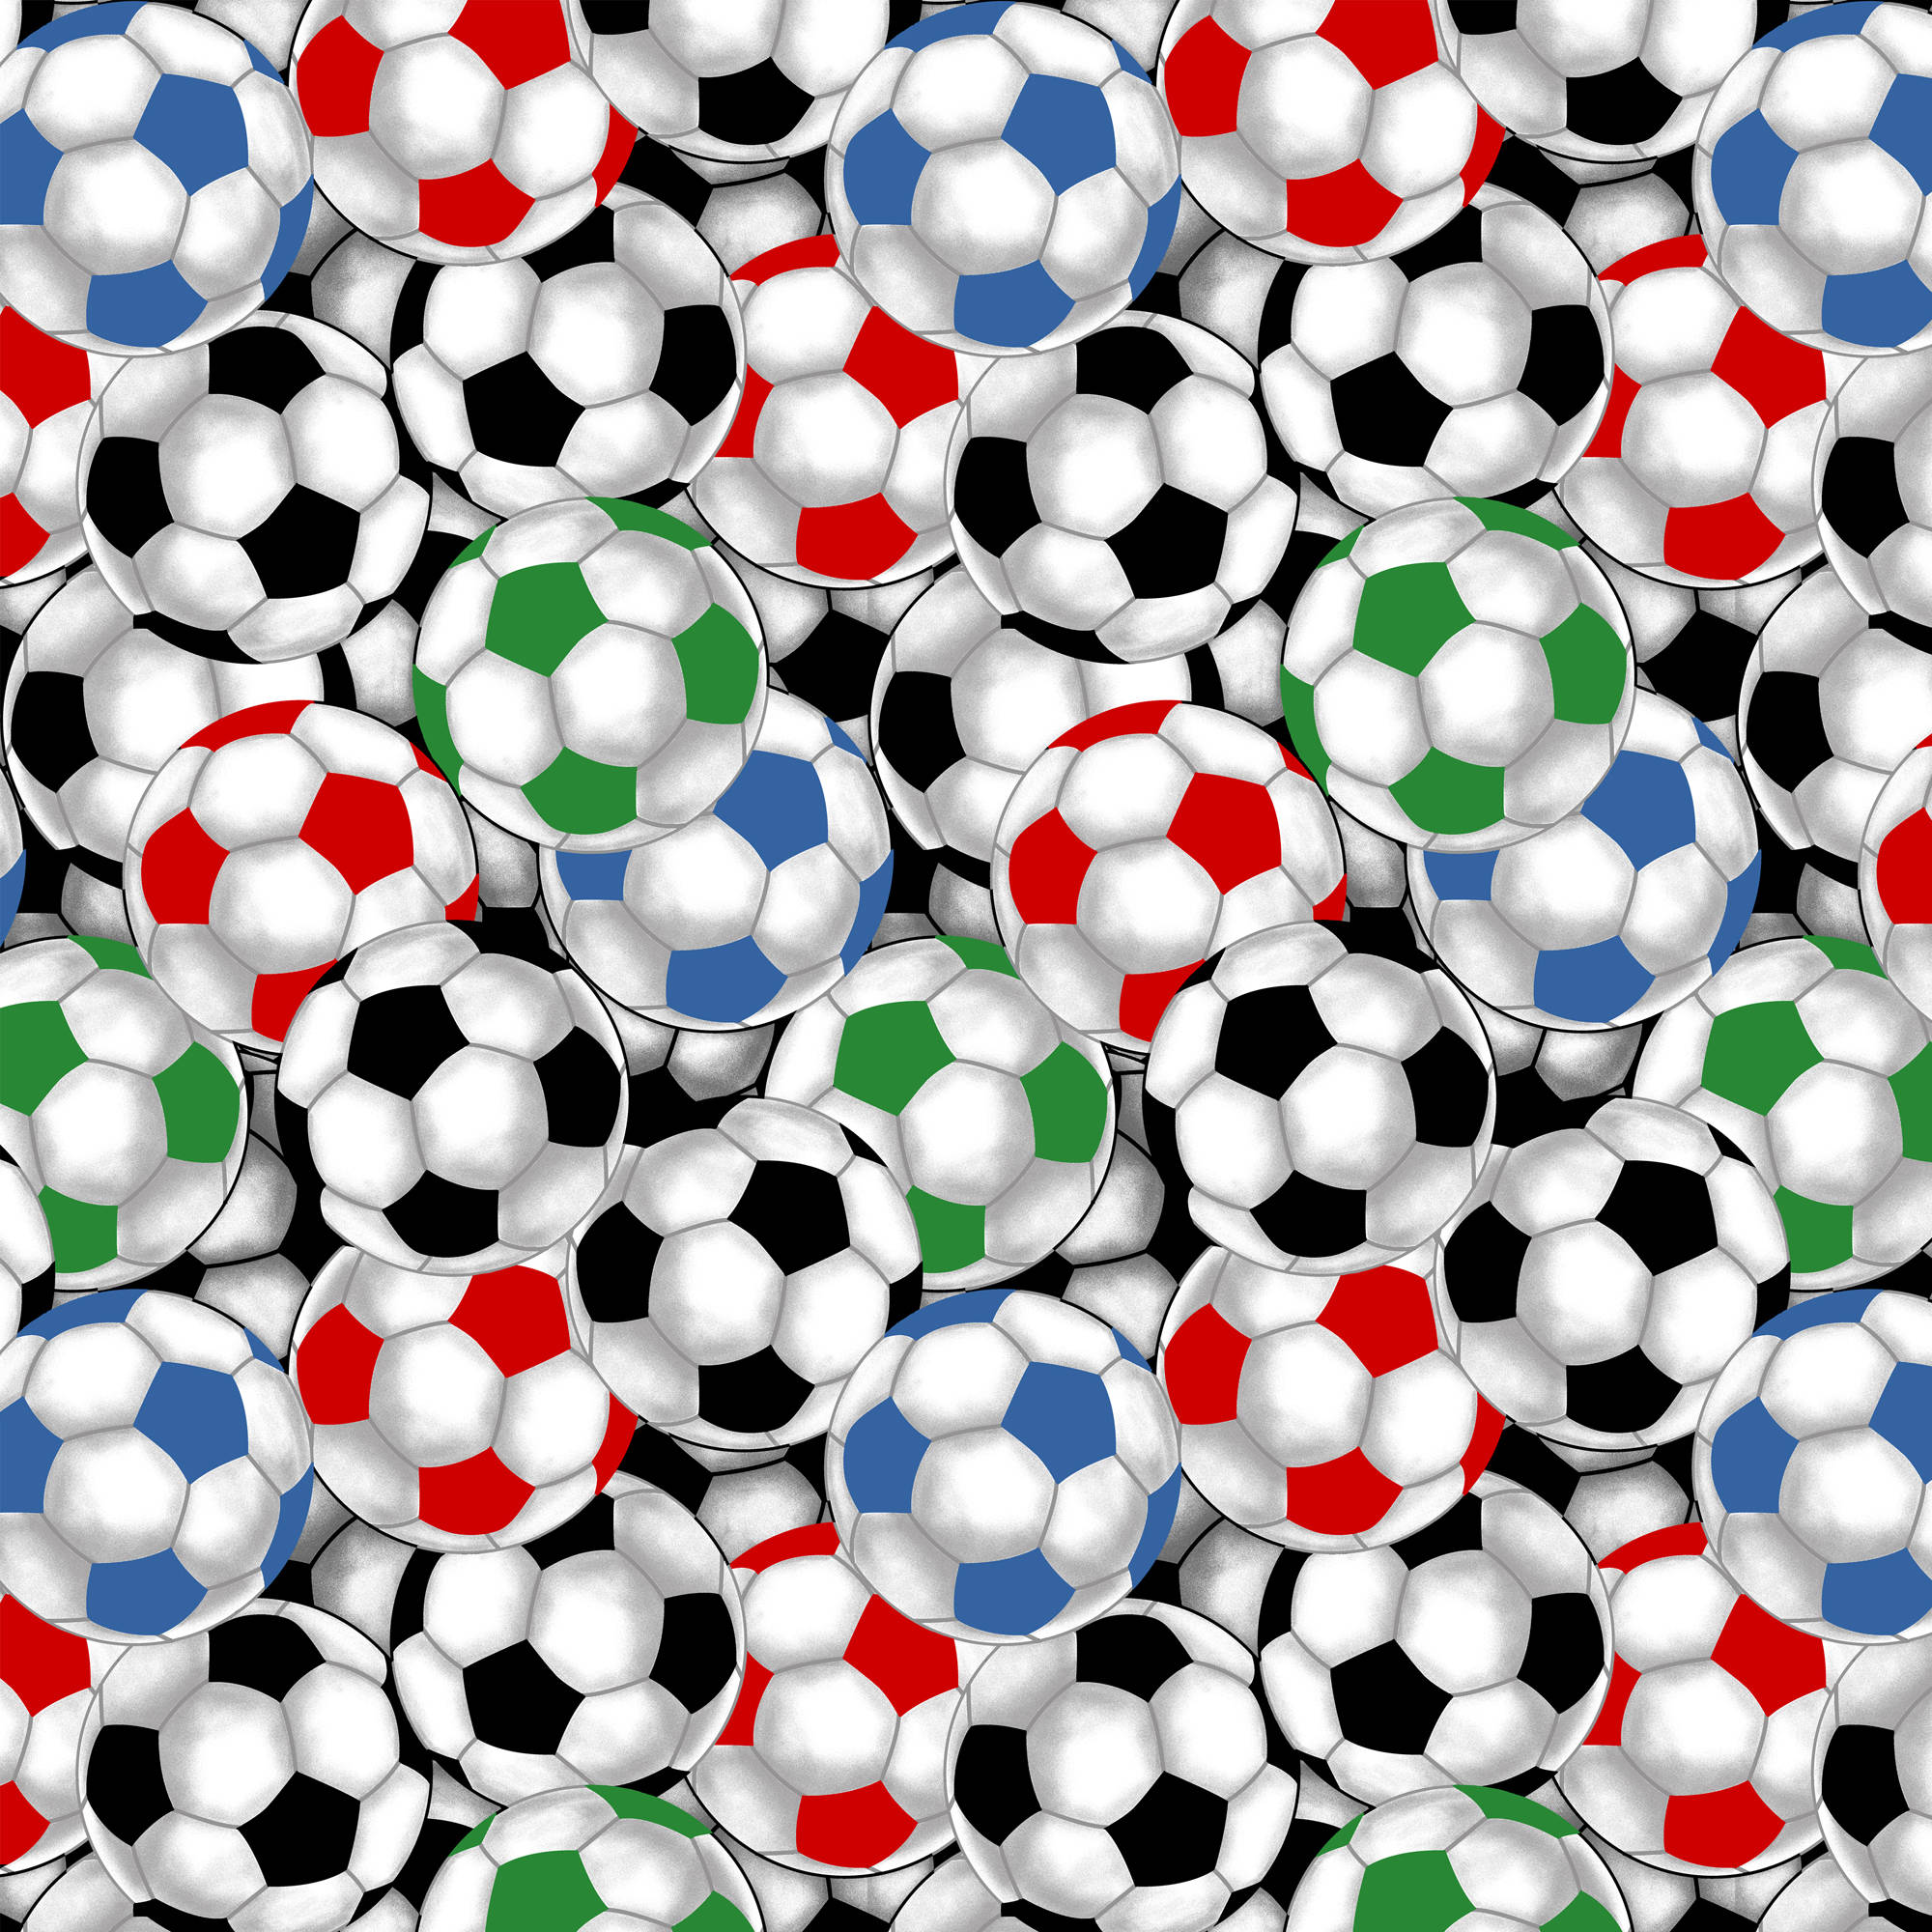 """David Textiles Polyester Quilted Cotton 44"""" Anti-Pill Packed Soccer Fabric, per Yard"""